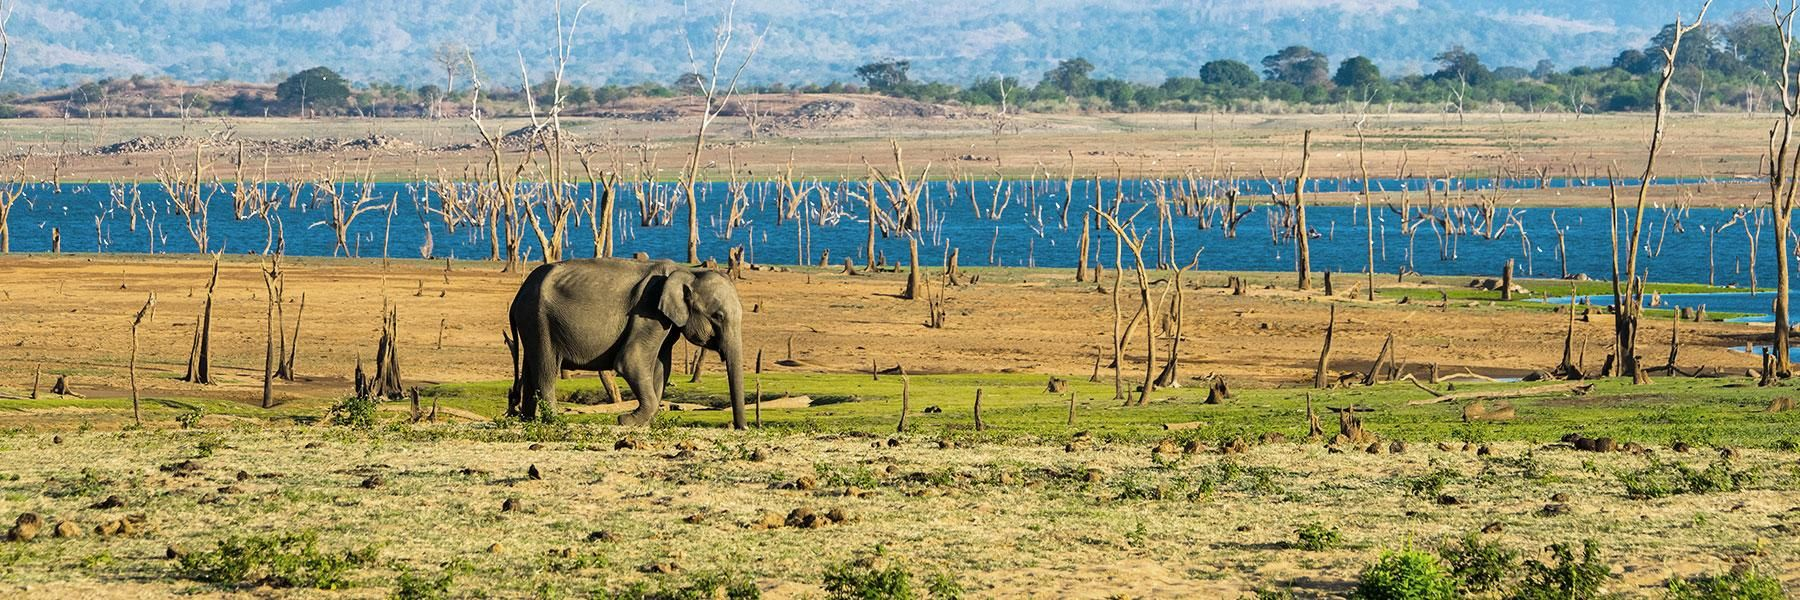 Why Visit Udawalawe National Park?